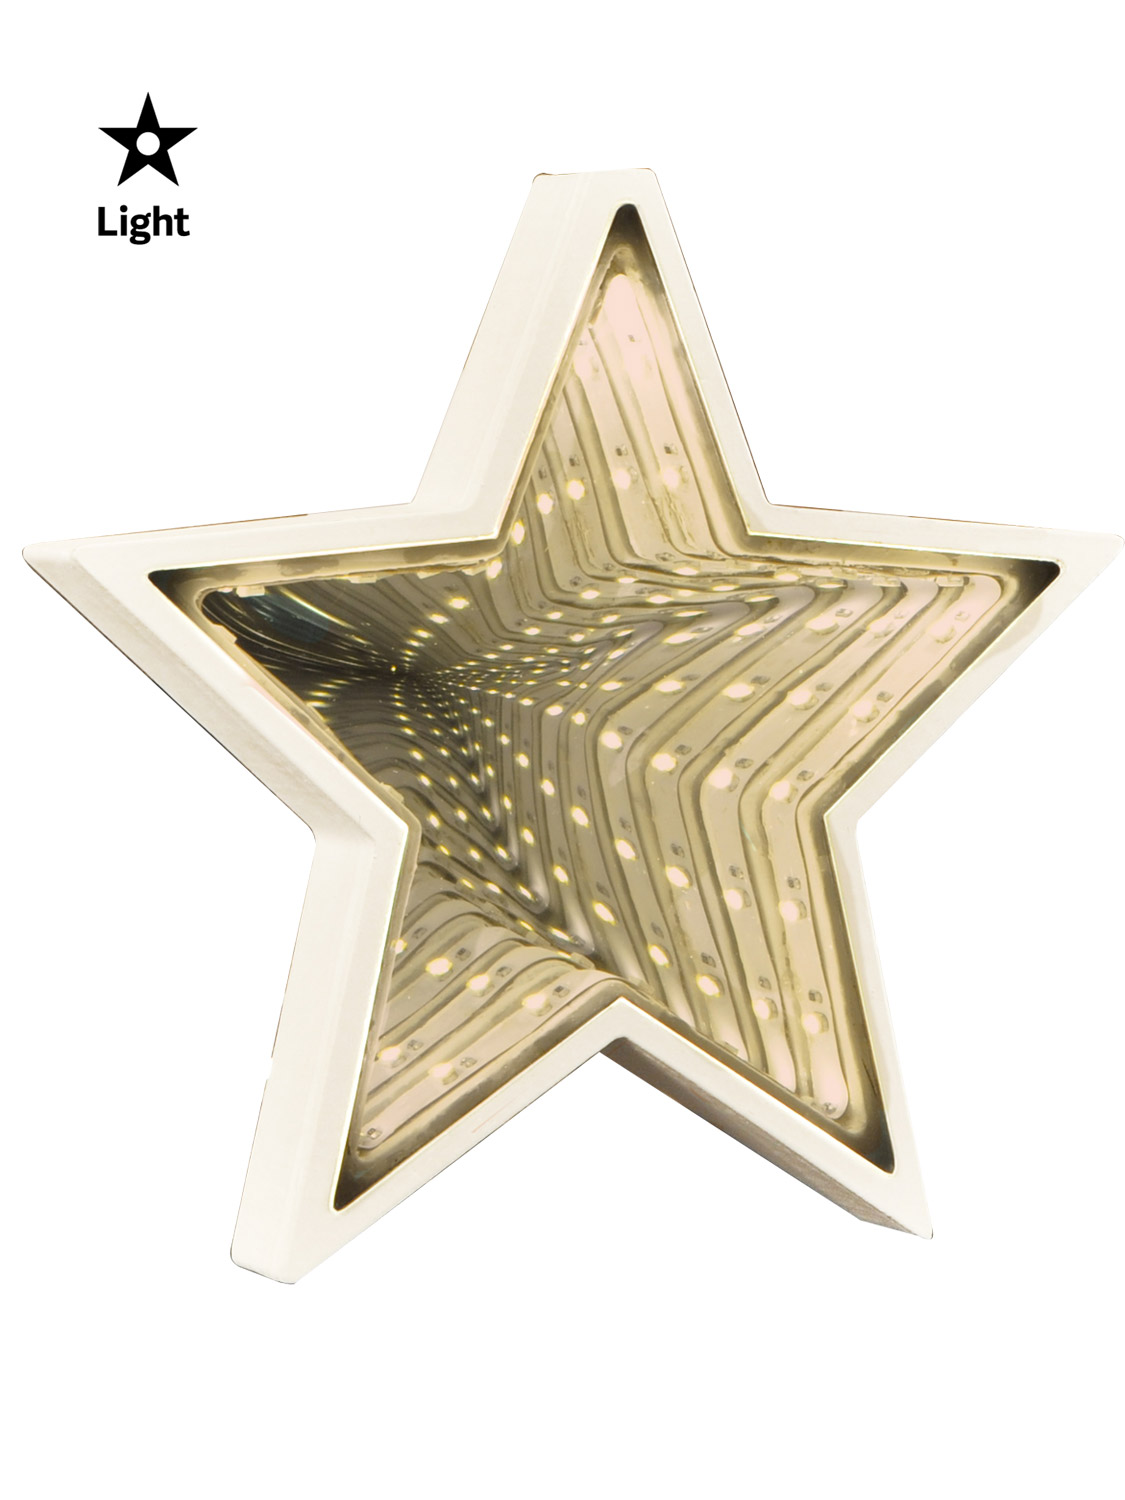 Details about Hanging Light Up Infinity Mirror White Wooden Decoration Christmas LED Star Tree